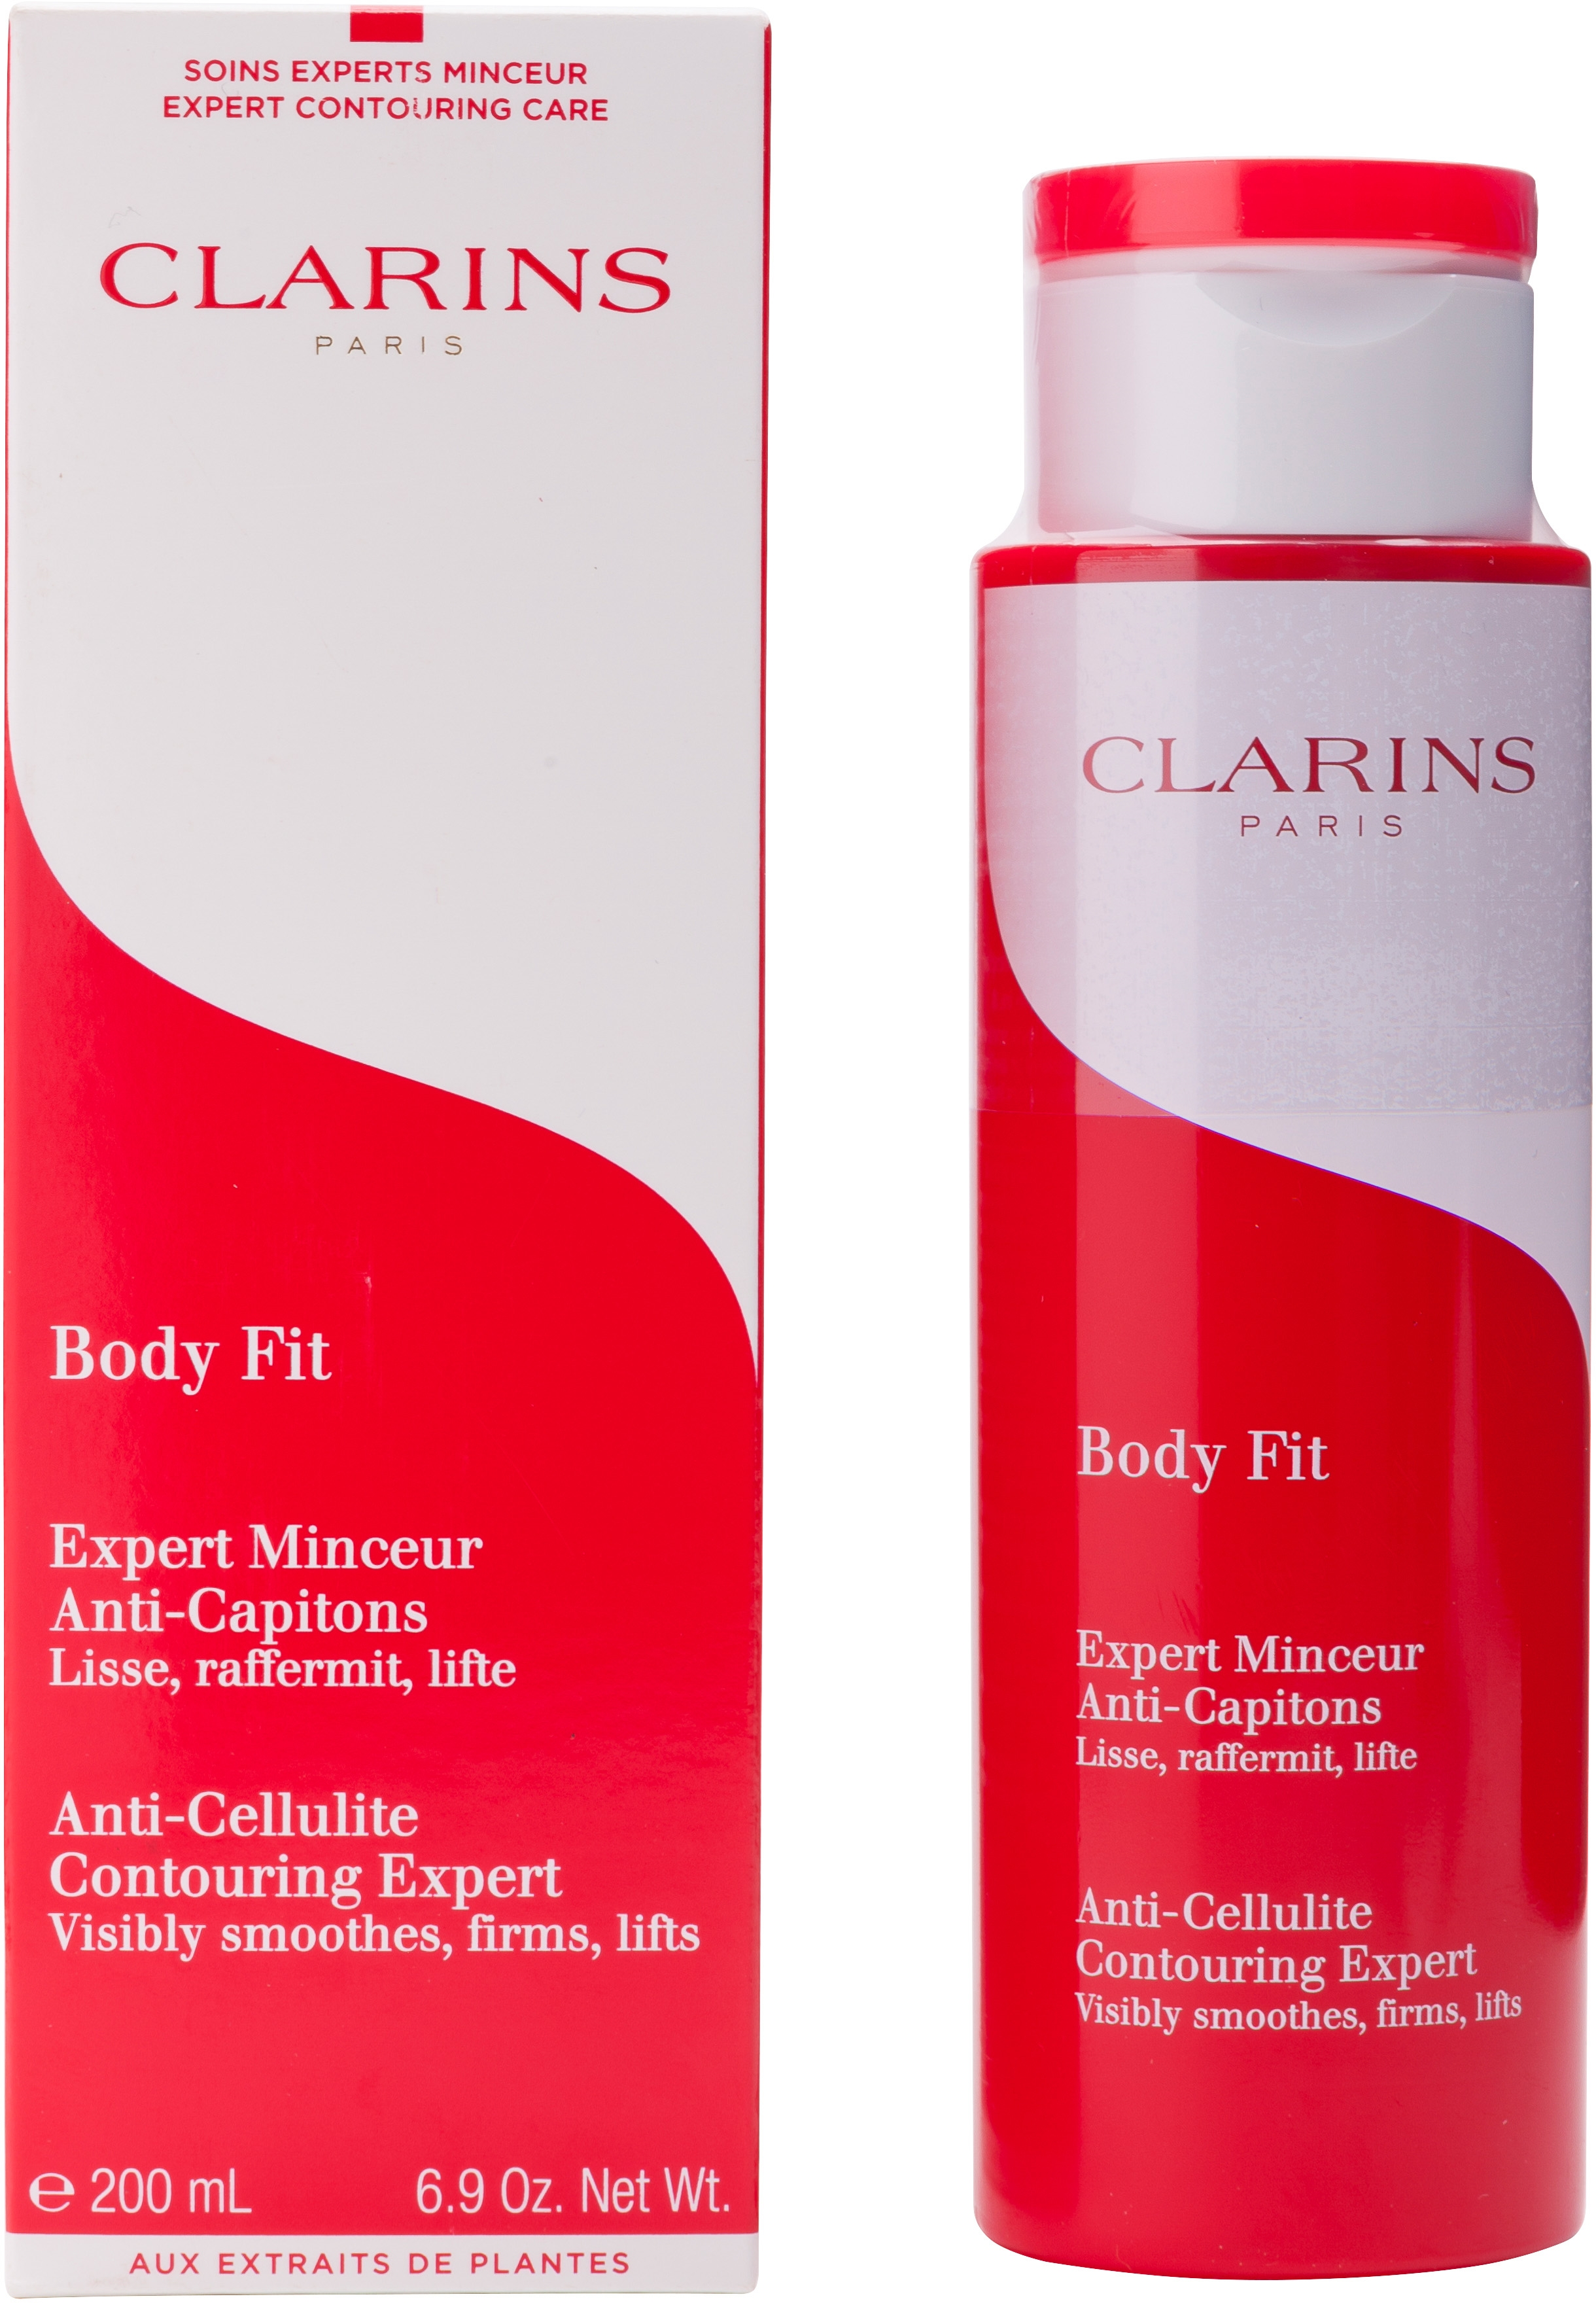 Body Fit. Anti-Cellulite